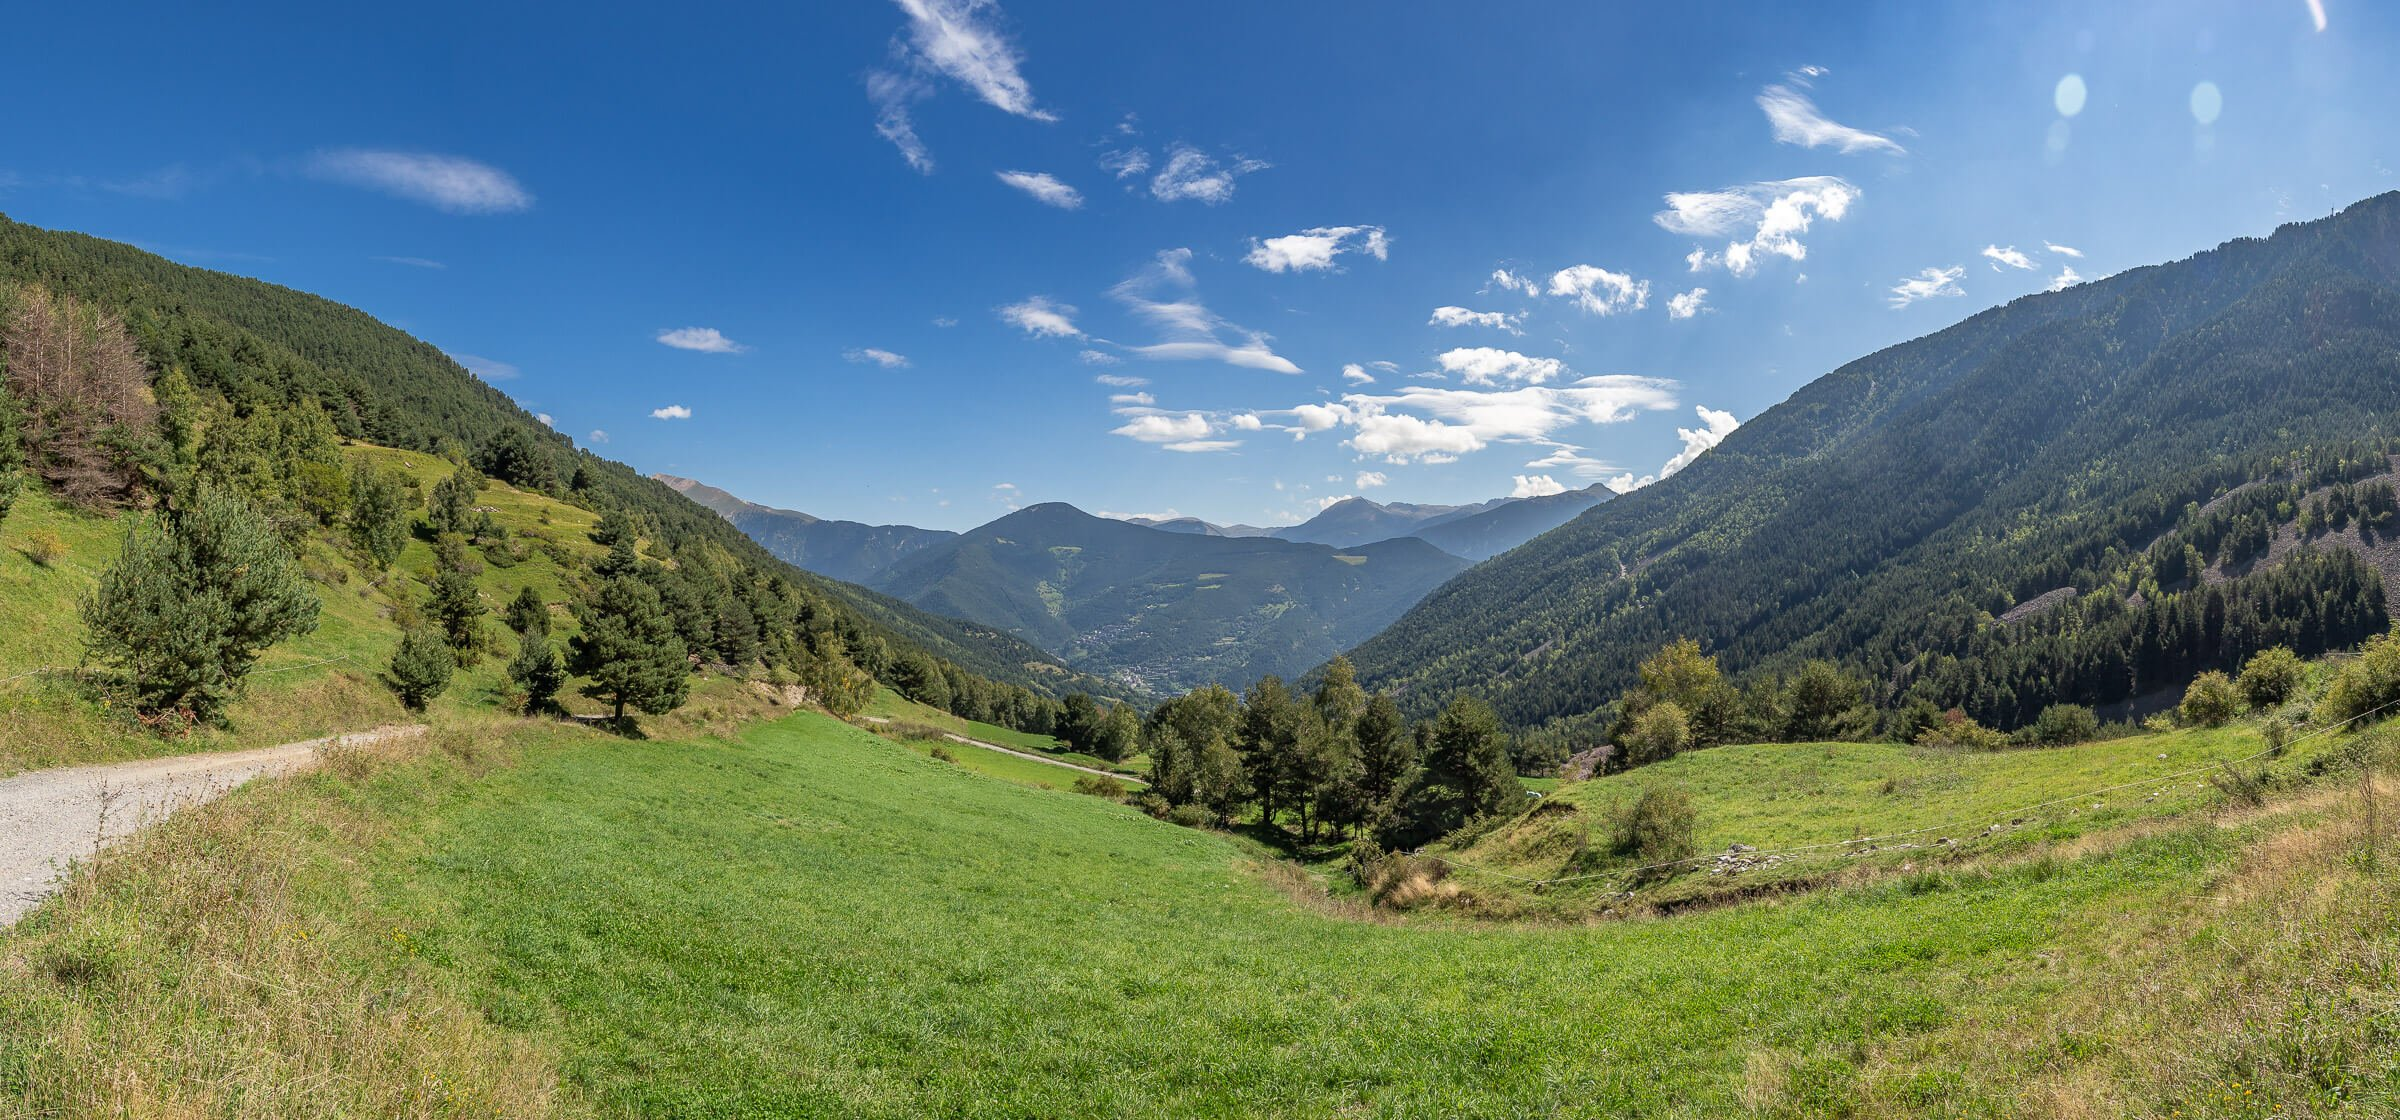 Panorama of a Mountain Valley in Andorra